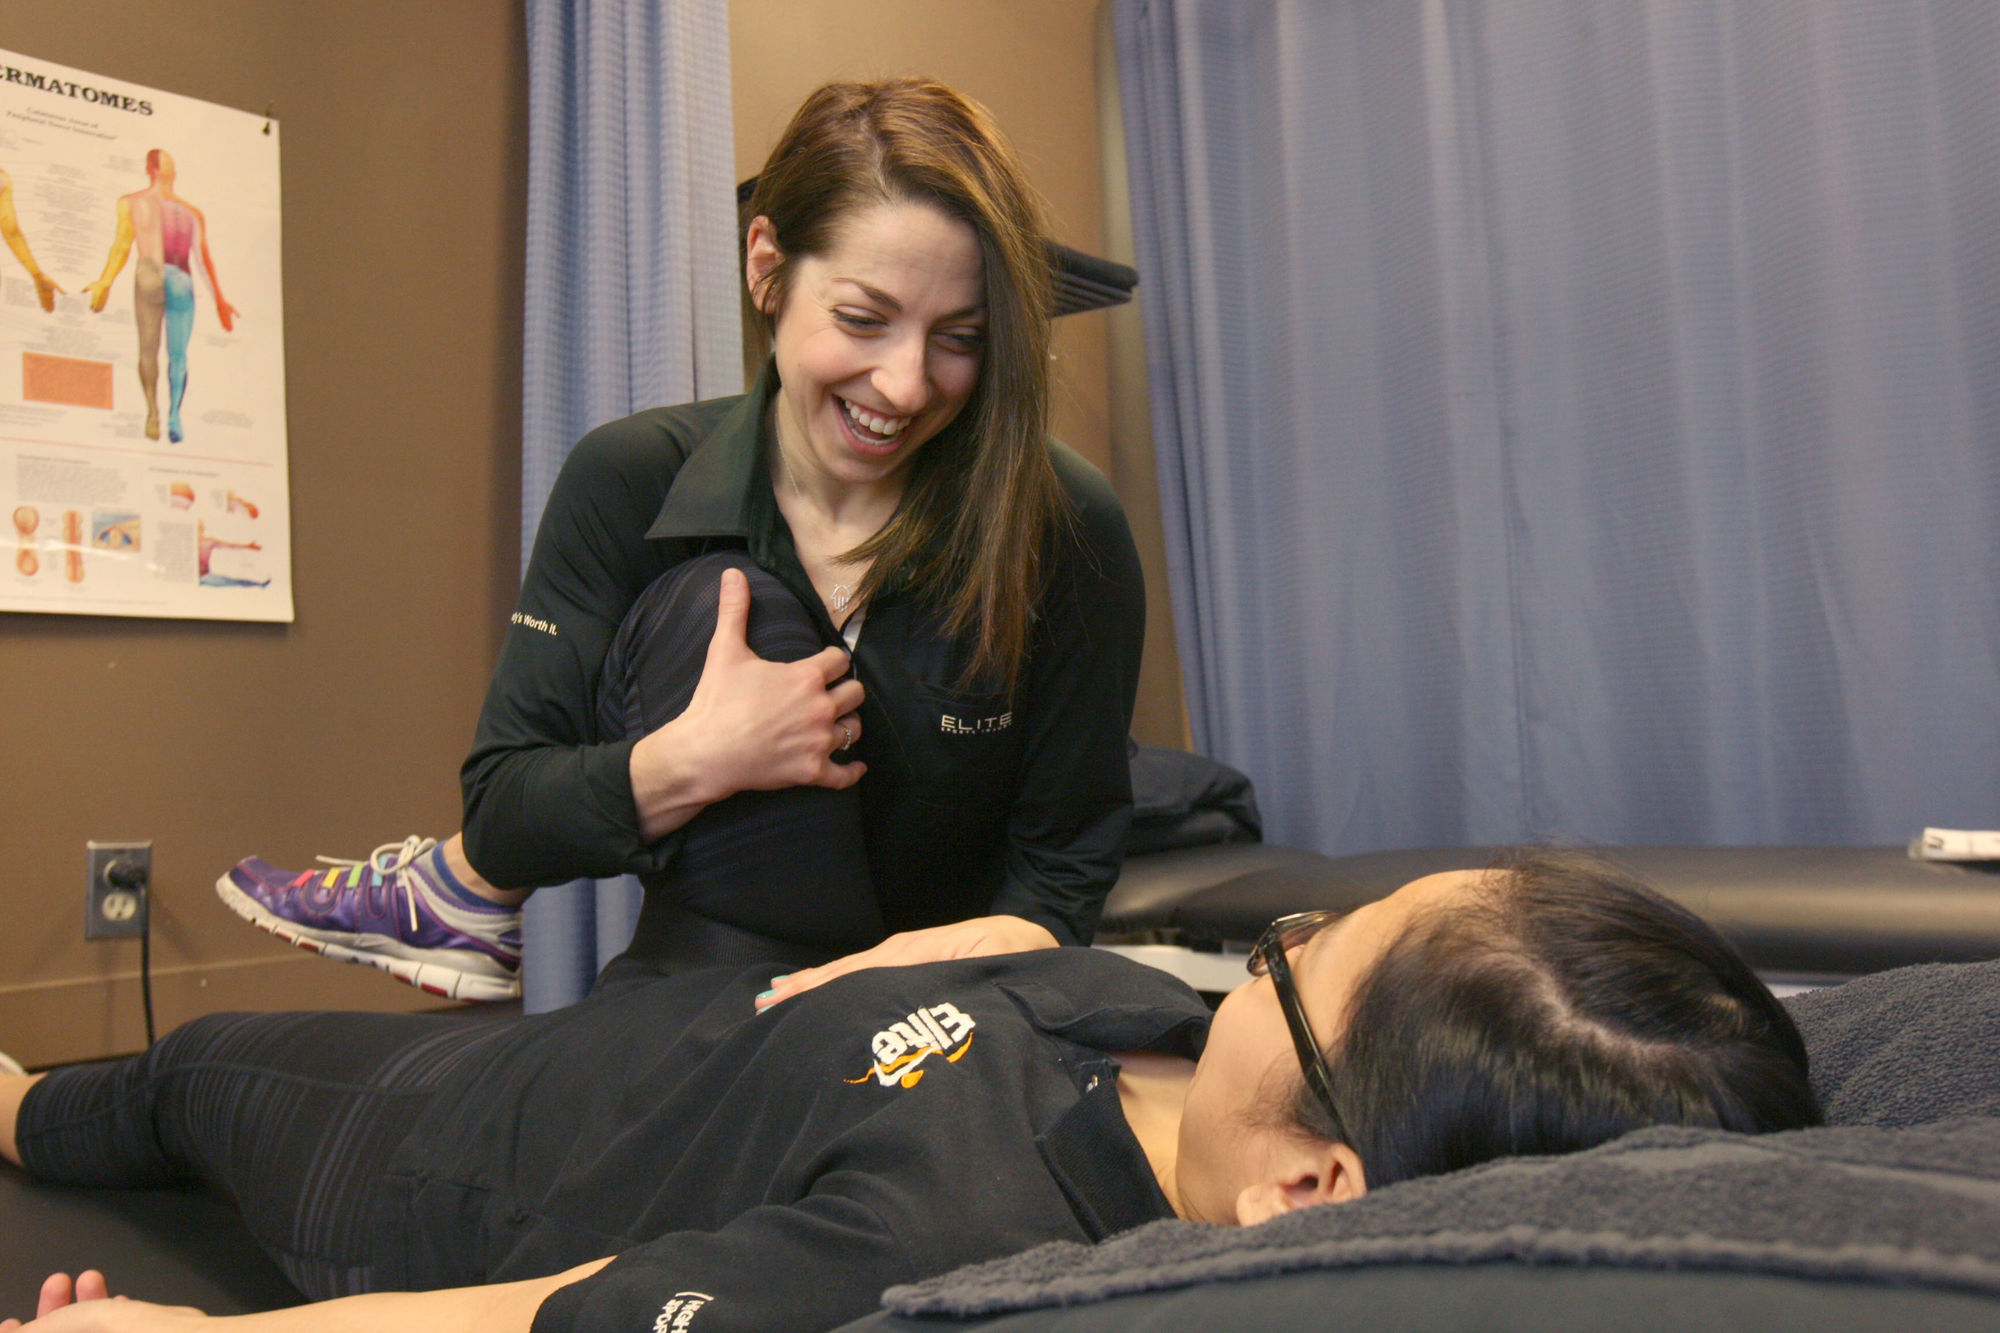 Physiotherapy treatment in Winnipeg